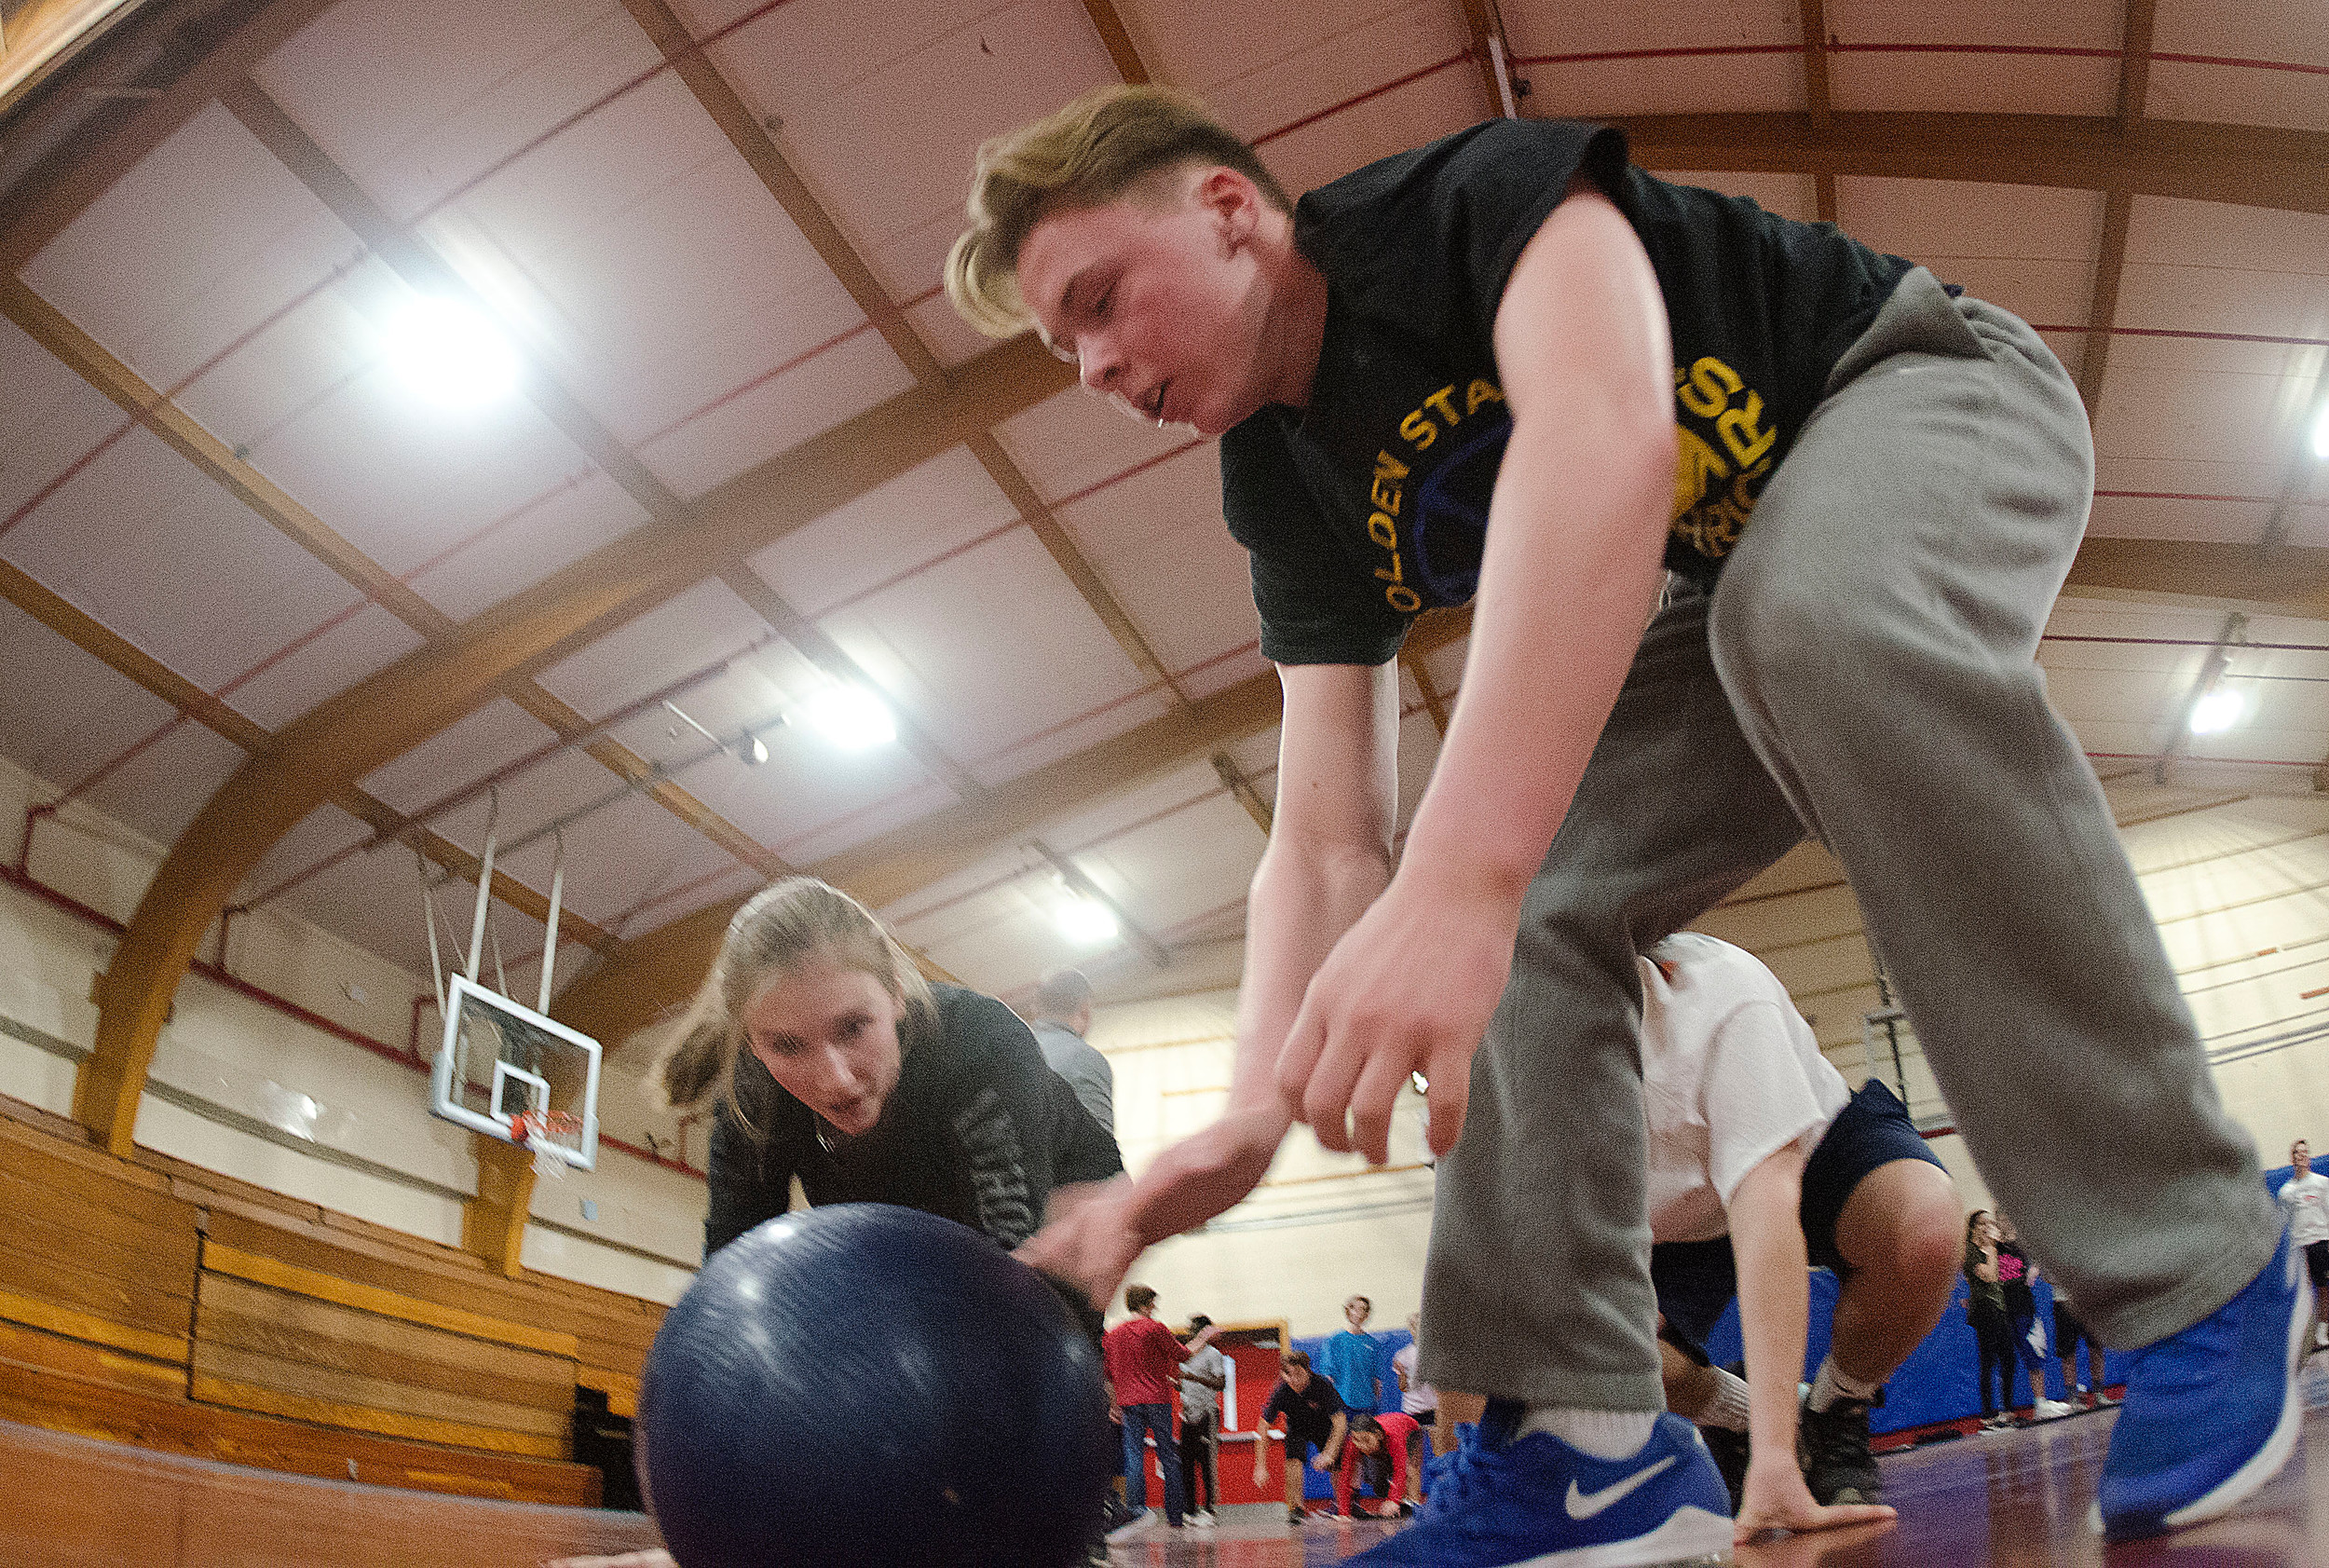 Kelly Conley looks on as Connor Stone readies to pick up the medicine ball.